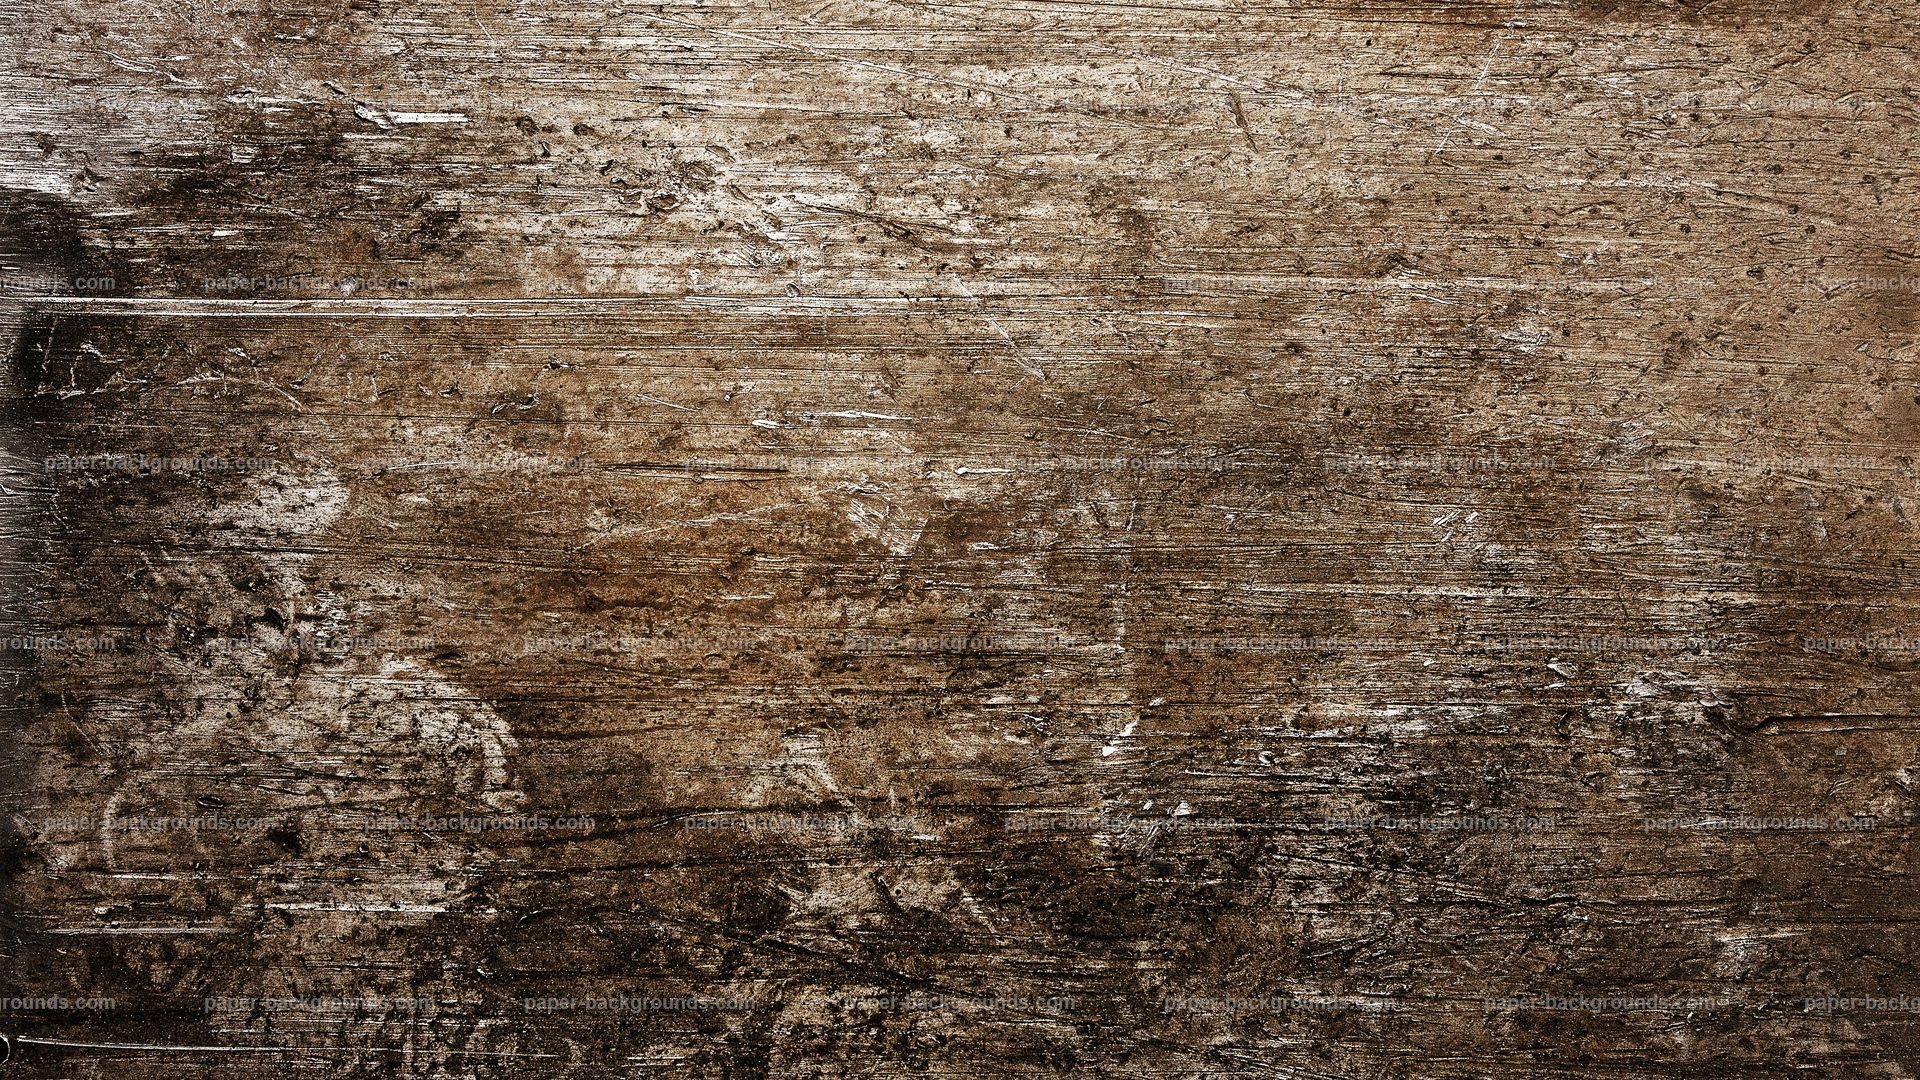 Paper Backgrounds   rusty metal texture   Royalty Free HD Paper ...